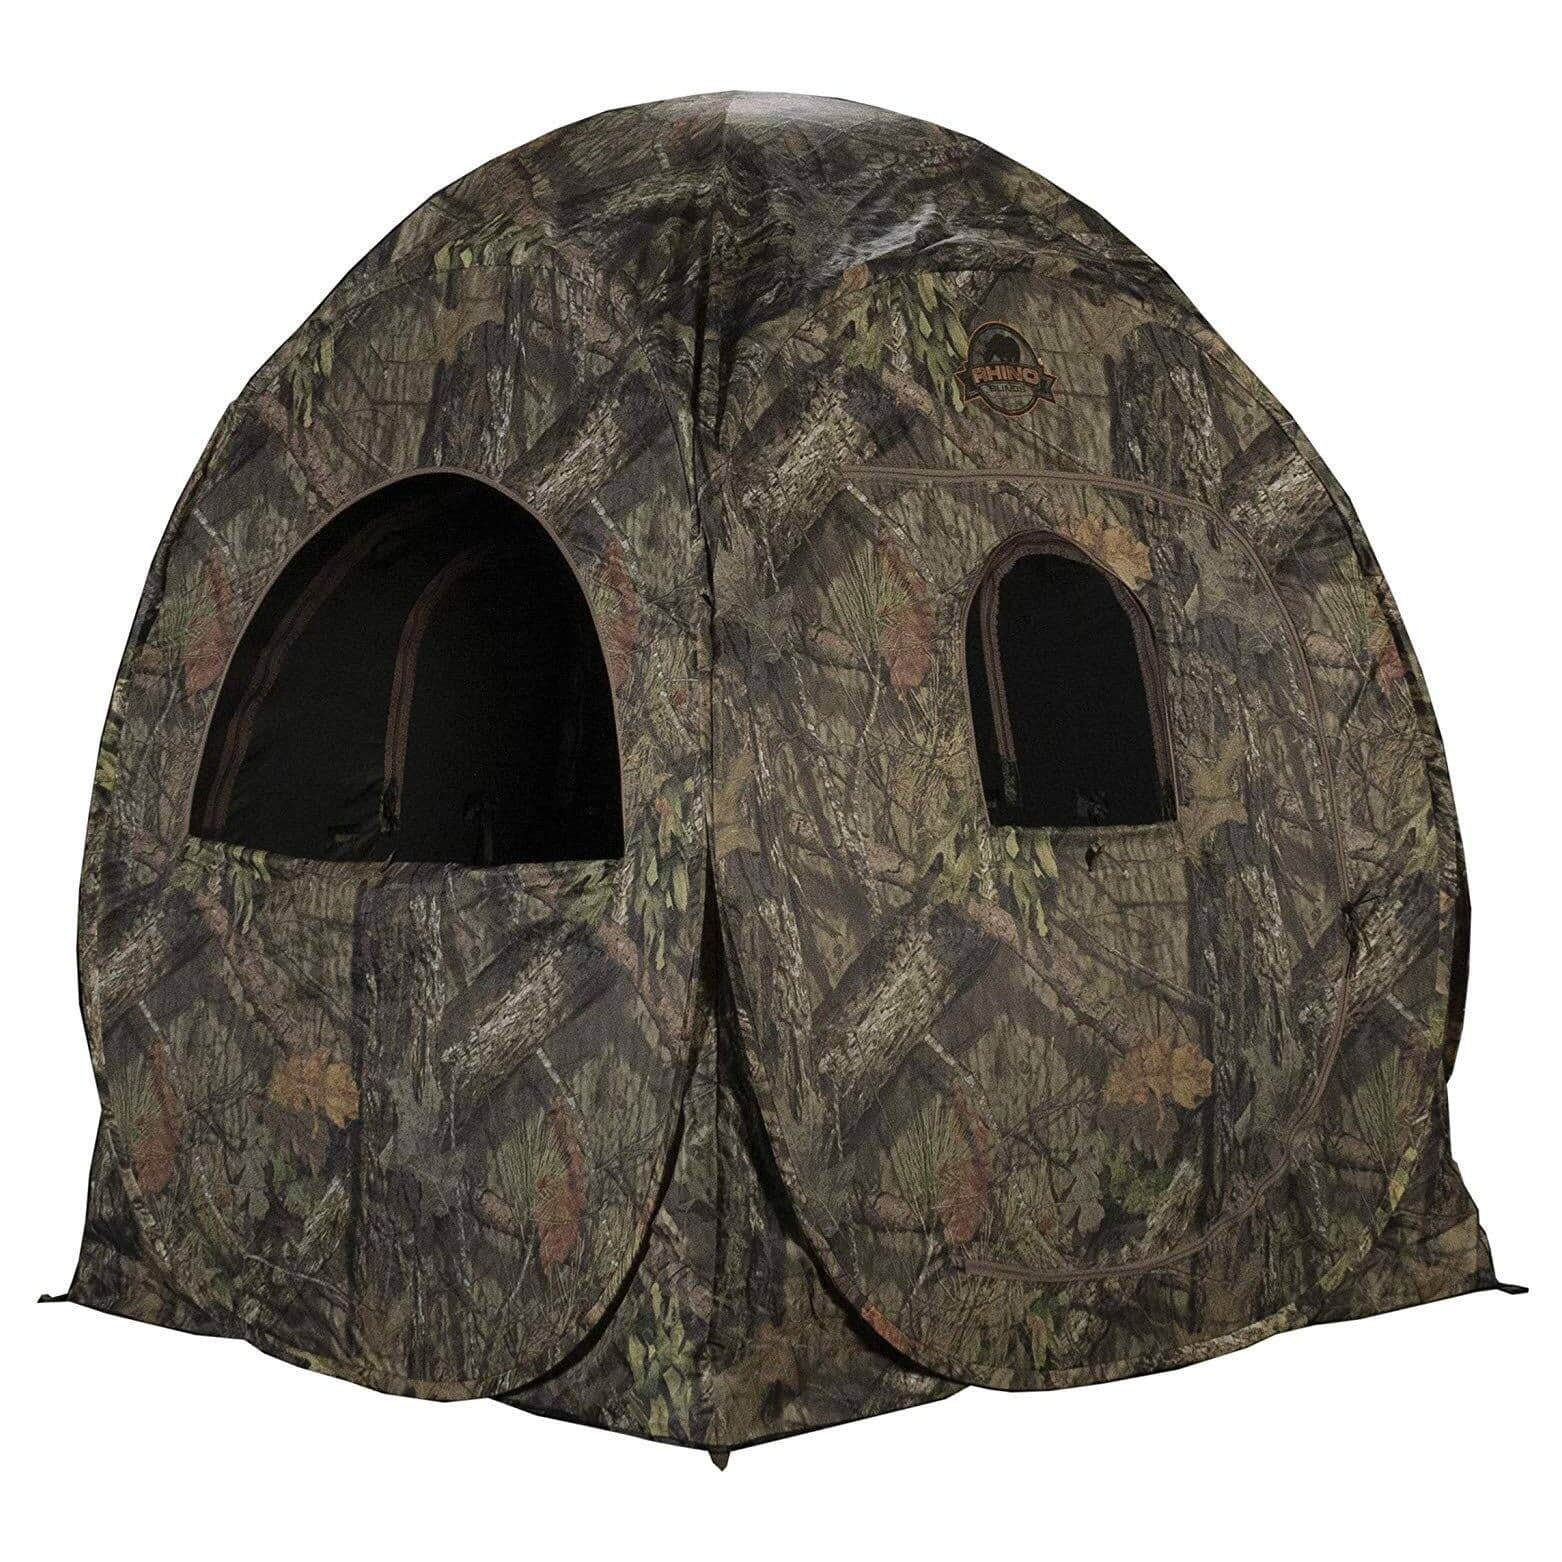 Rhino Blinds R75-MOC Mossy Oak Breakup Country Water Repellent 2-Person Blind $48.99 + FS